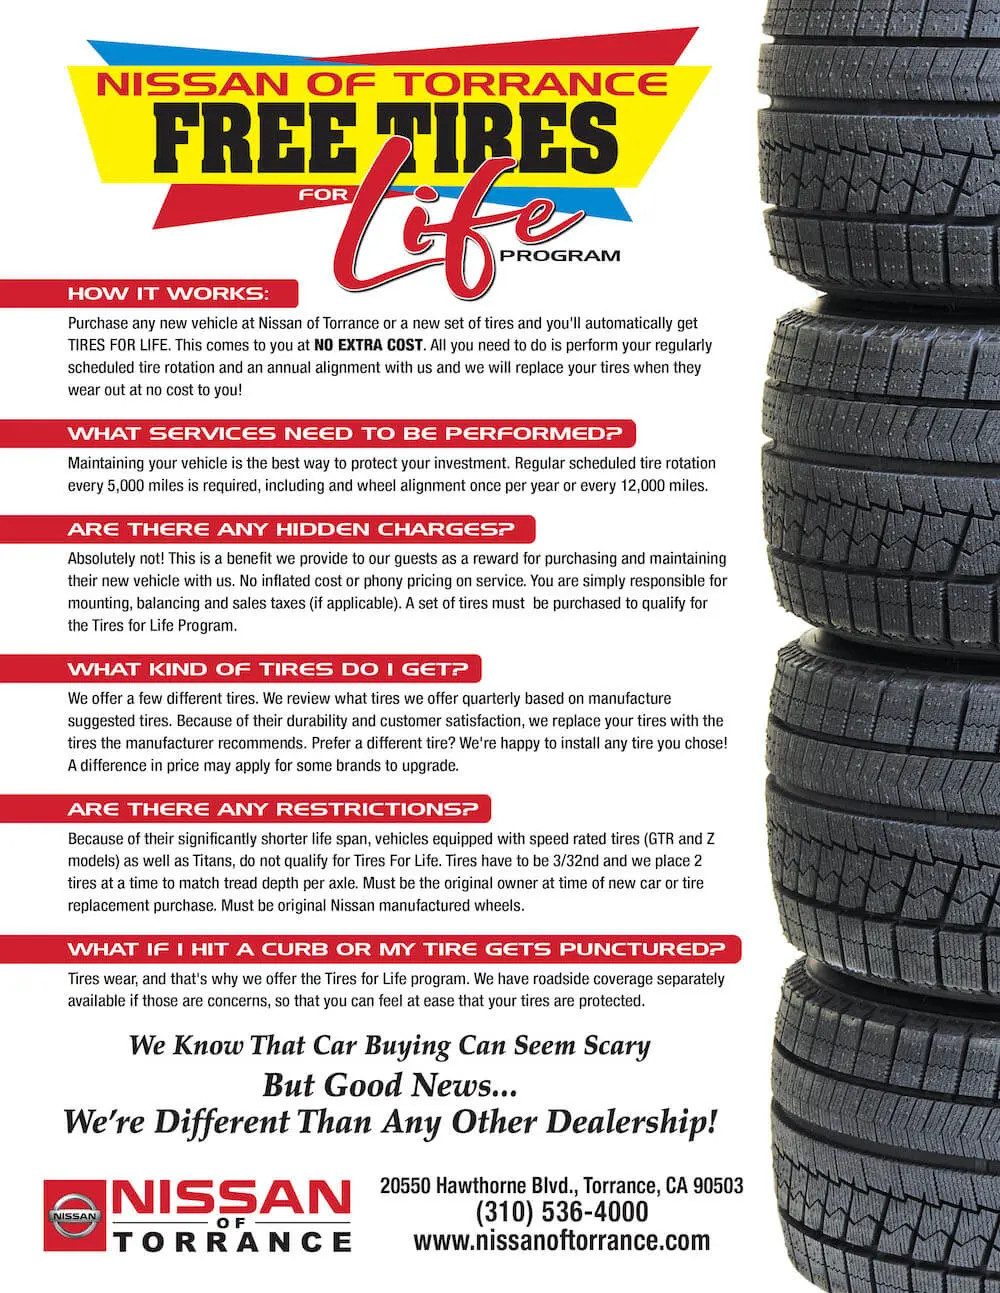 nissan of torrance tires for life